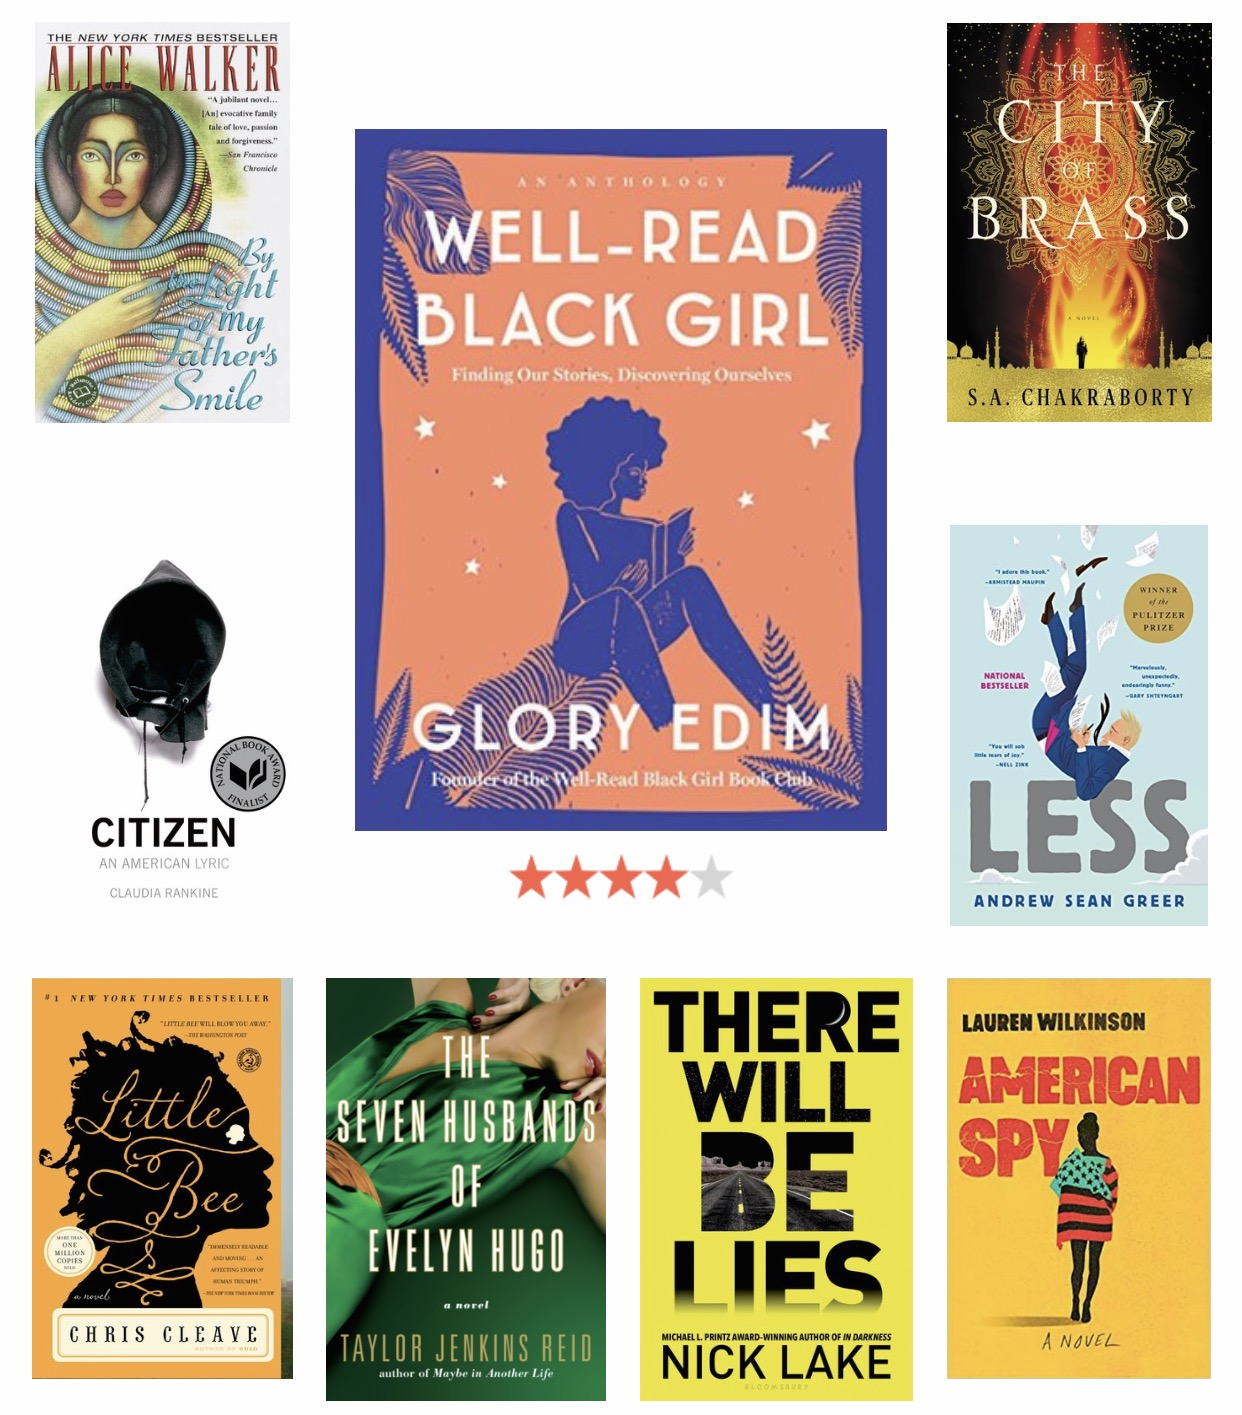 2019 Books in Review